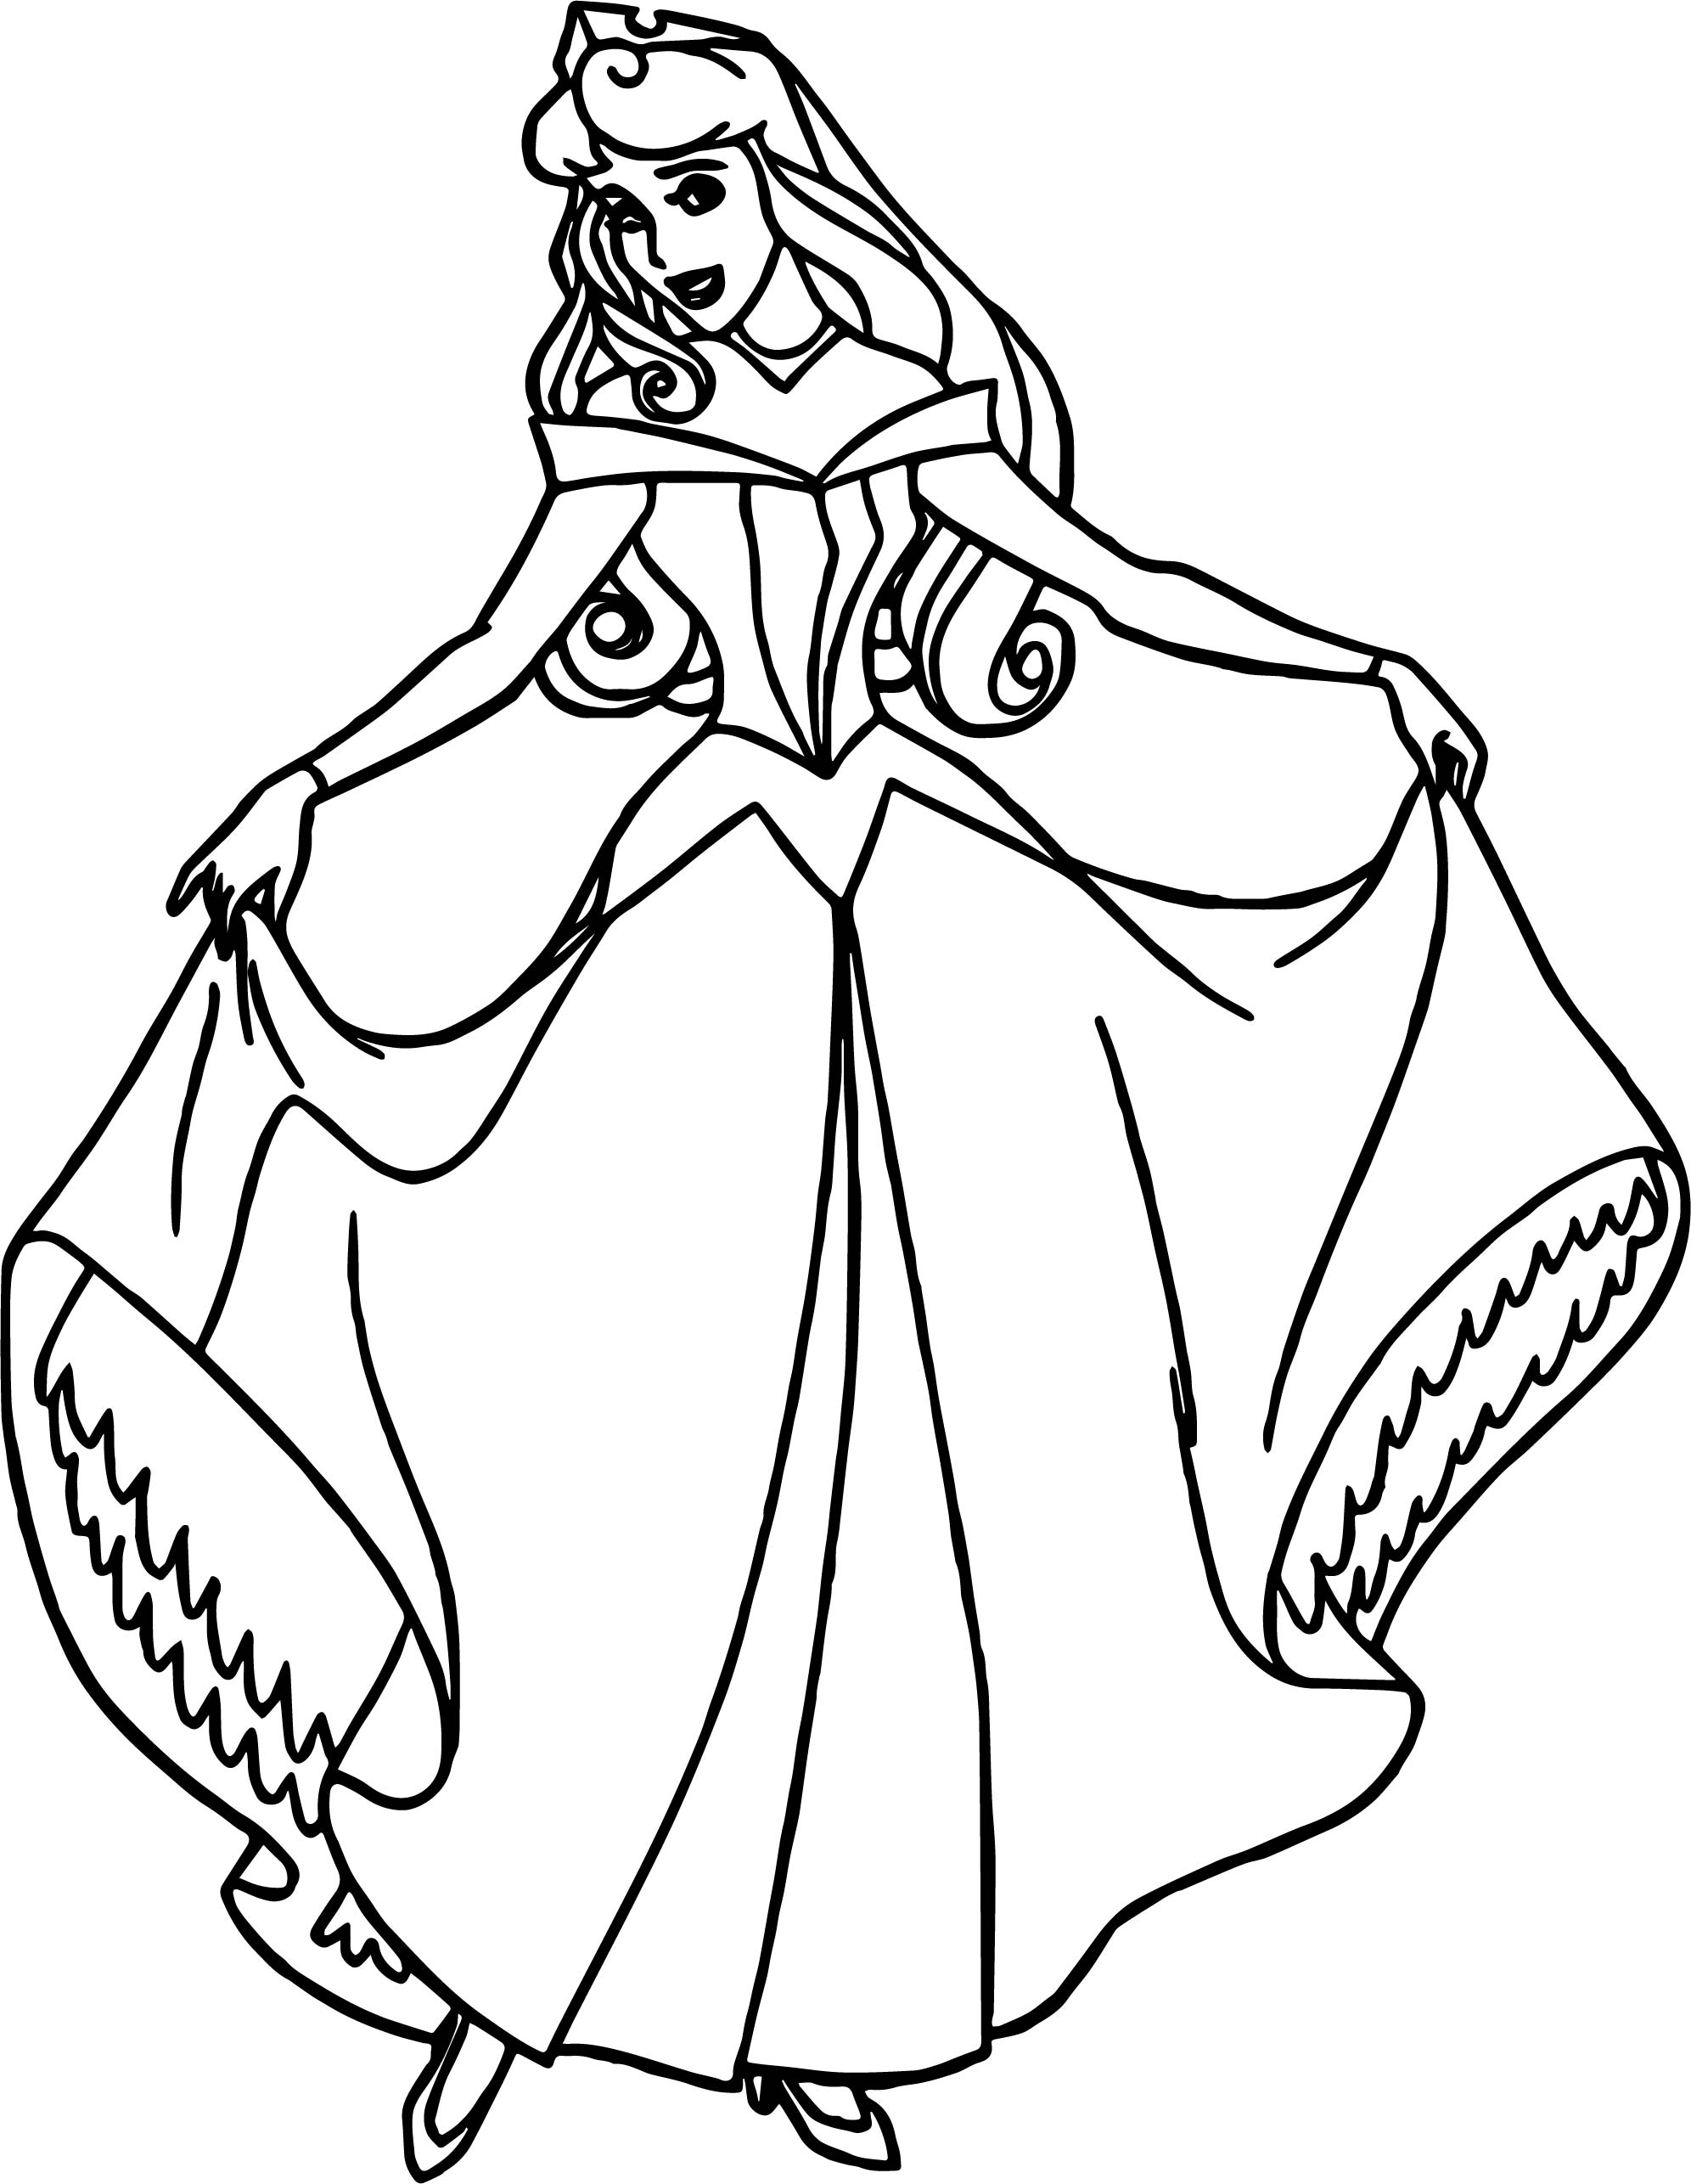 Pretty girl coloring pages - Aurora Pretty Girl Cartoon Coloring Page